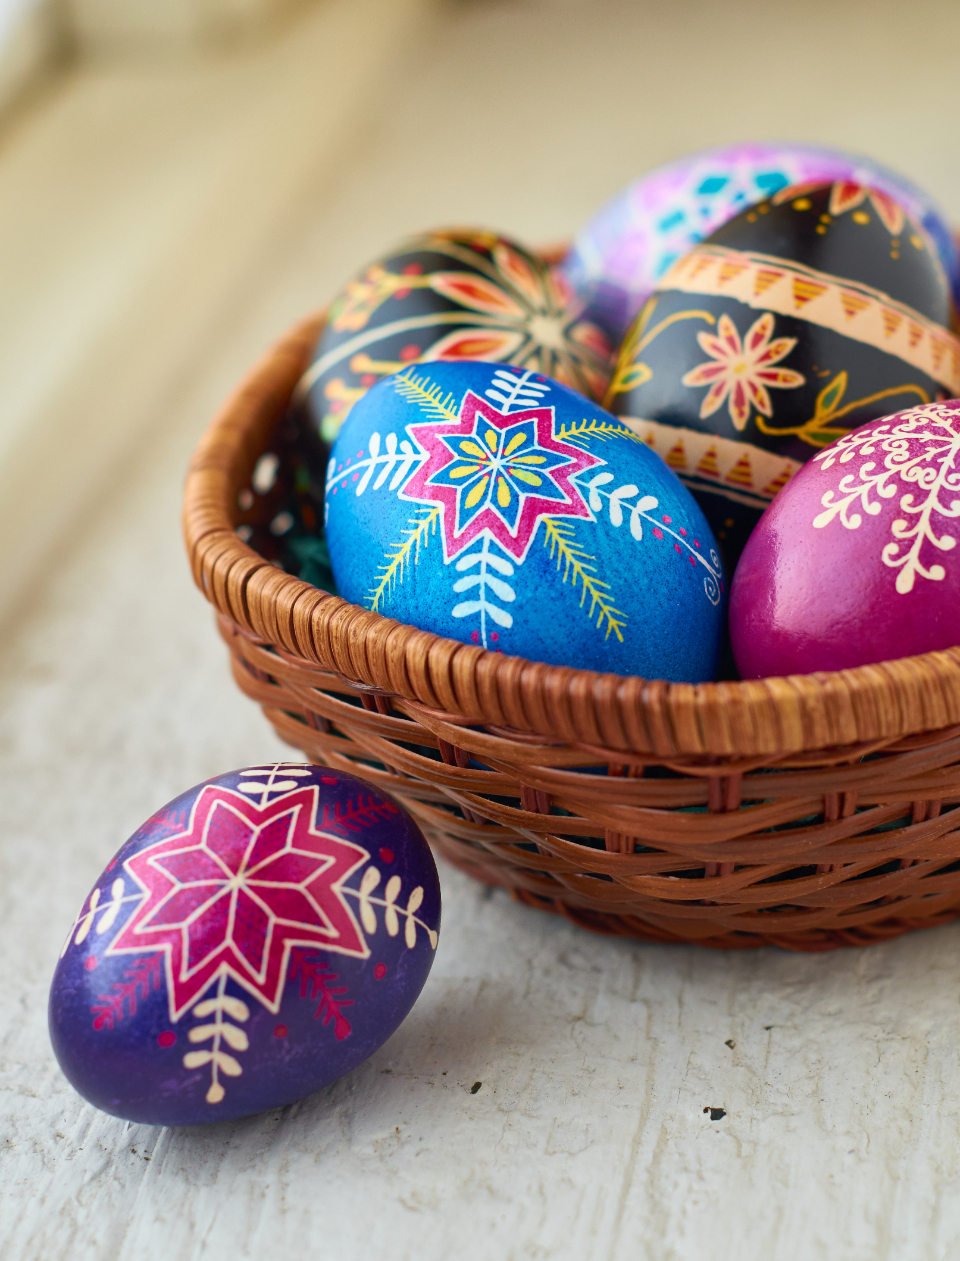 Free stock photo of decorative eggs